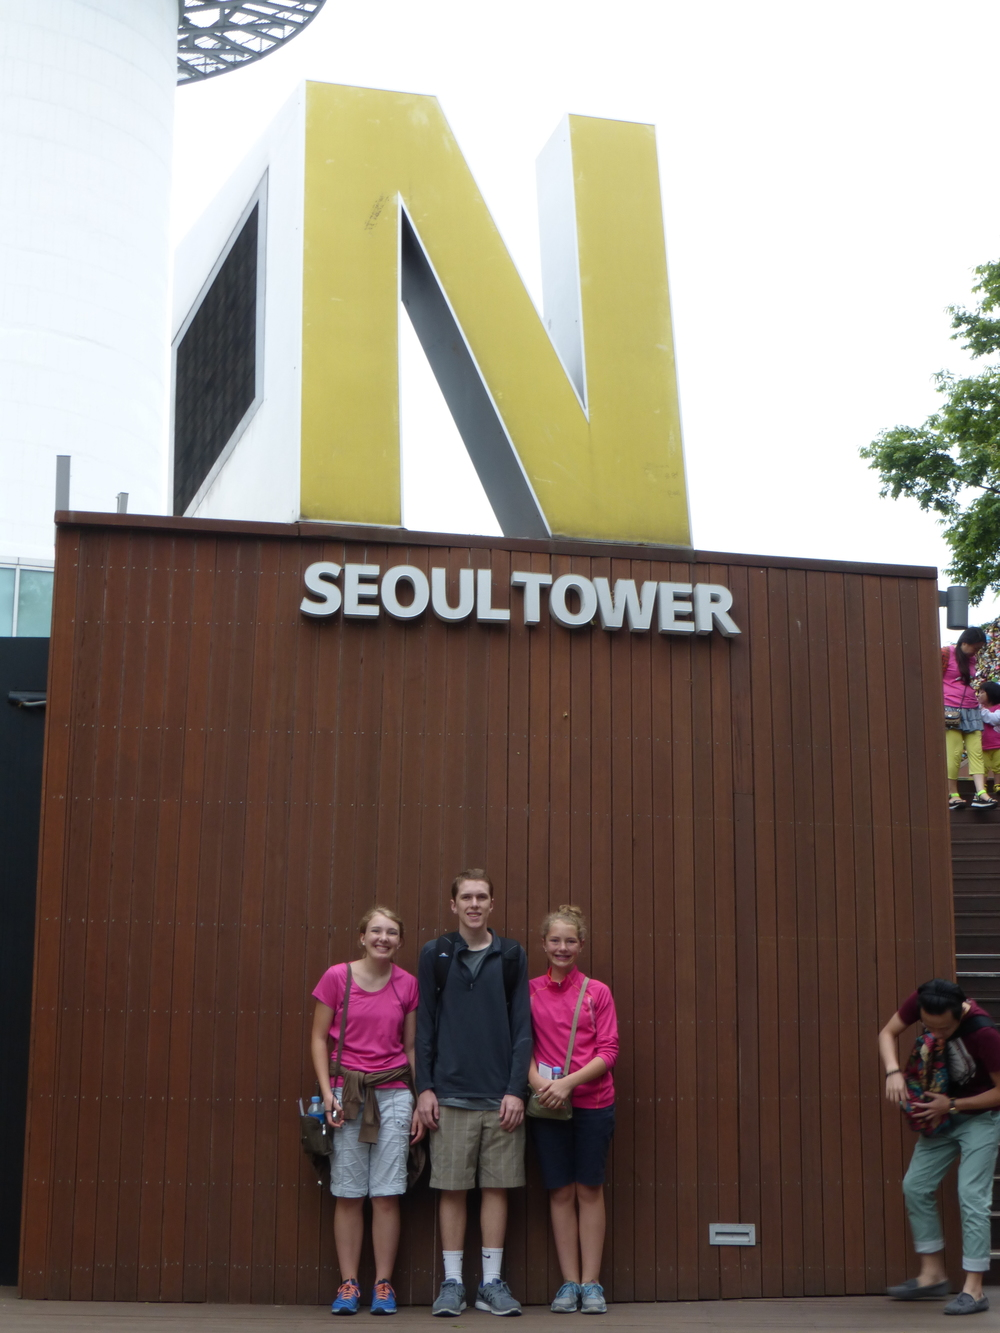 Us at N Seoul Tower before going to the very top!